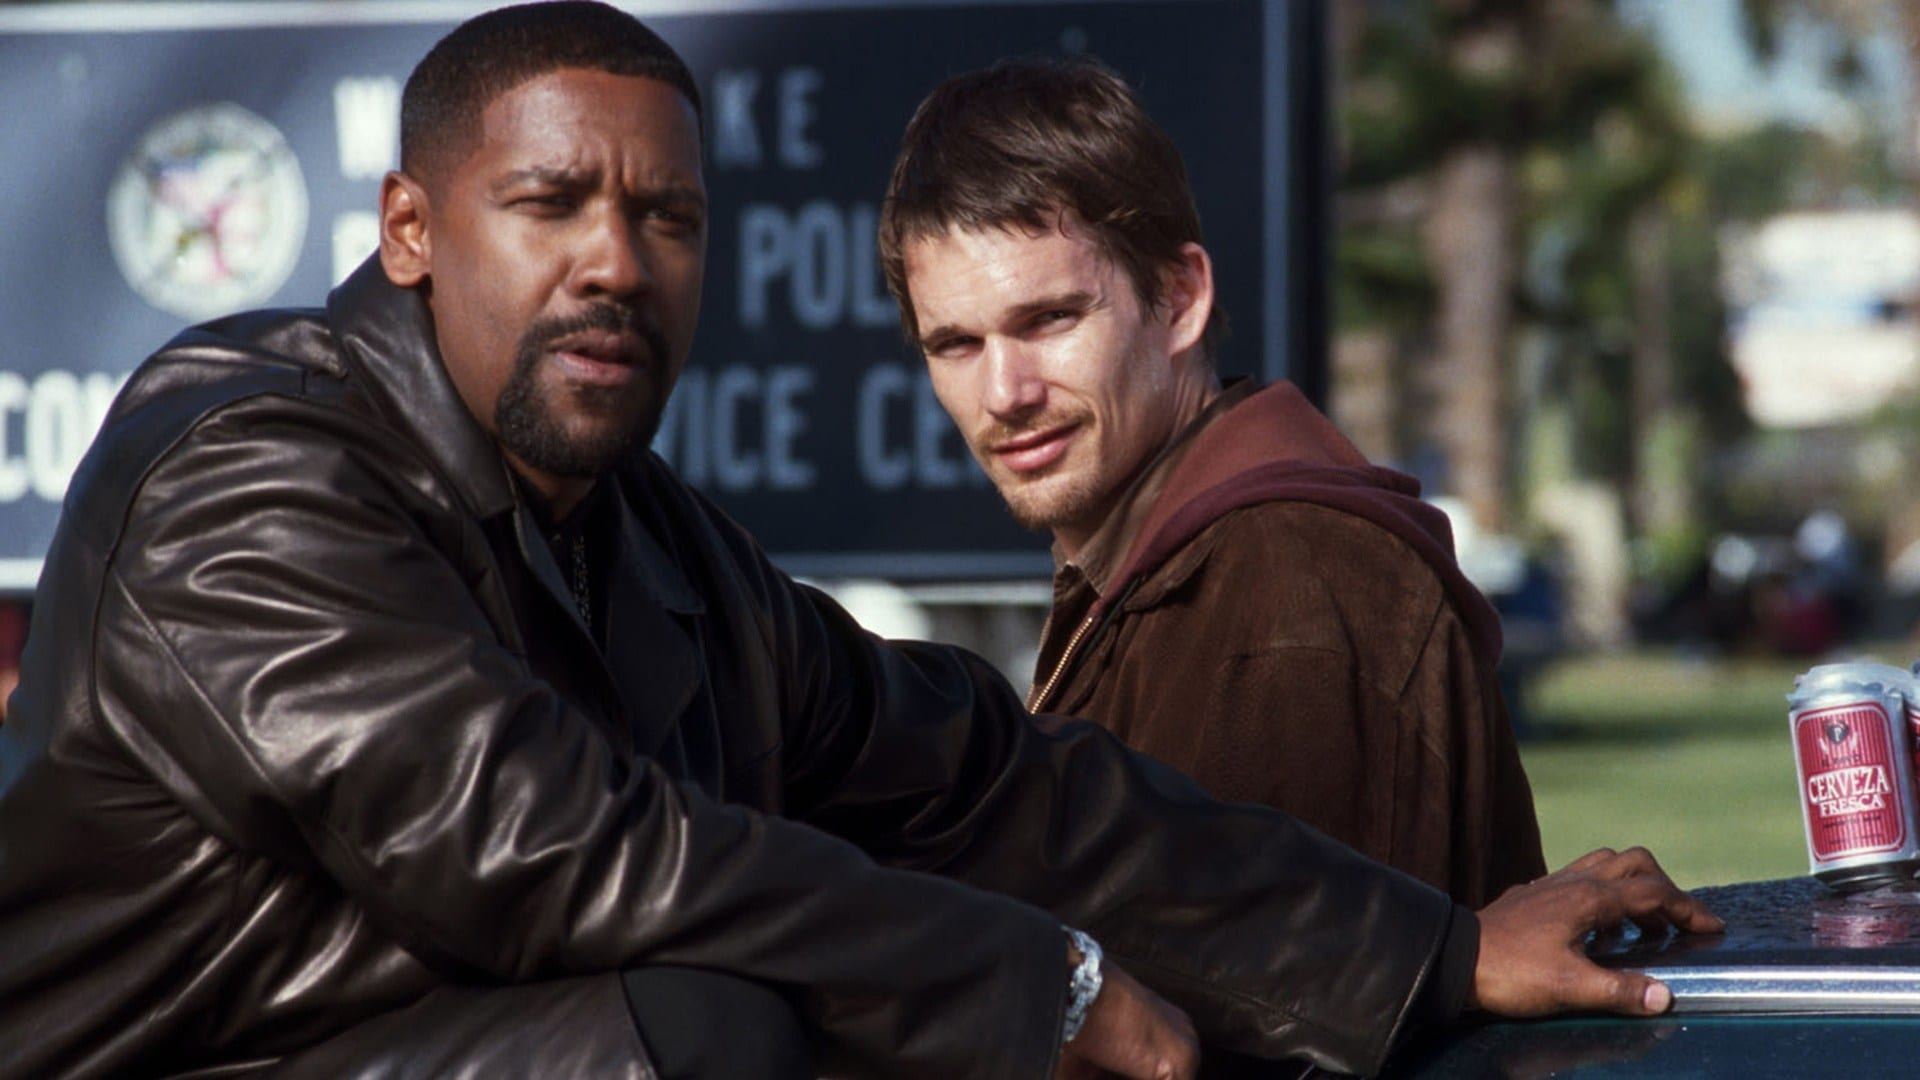 'Training Day' Prequel Reportedly in the Works